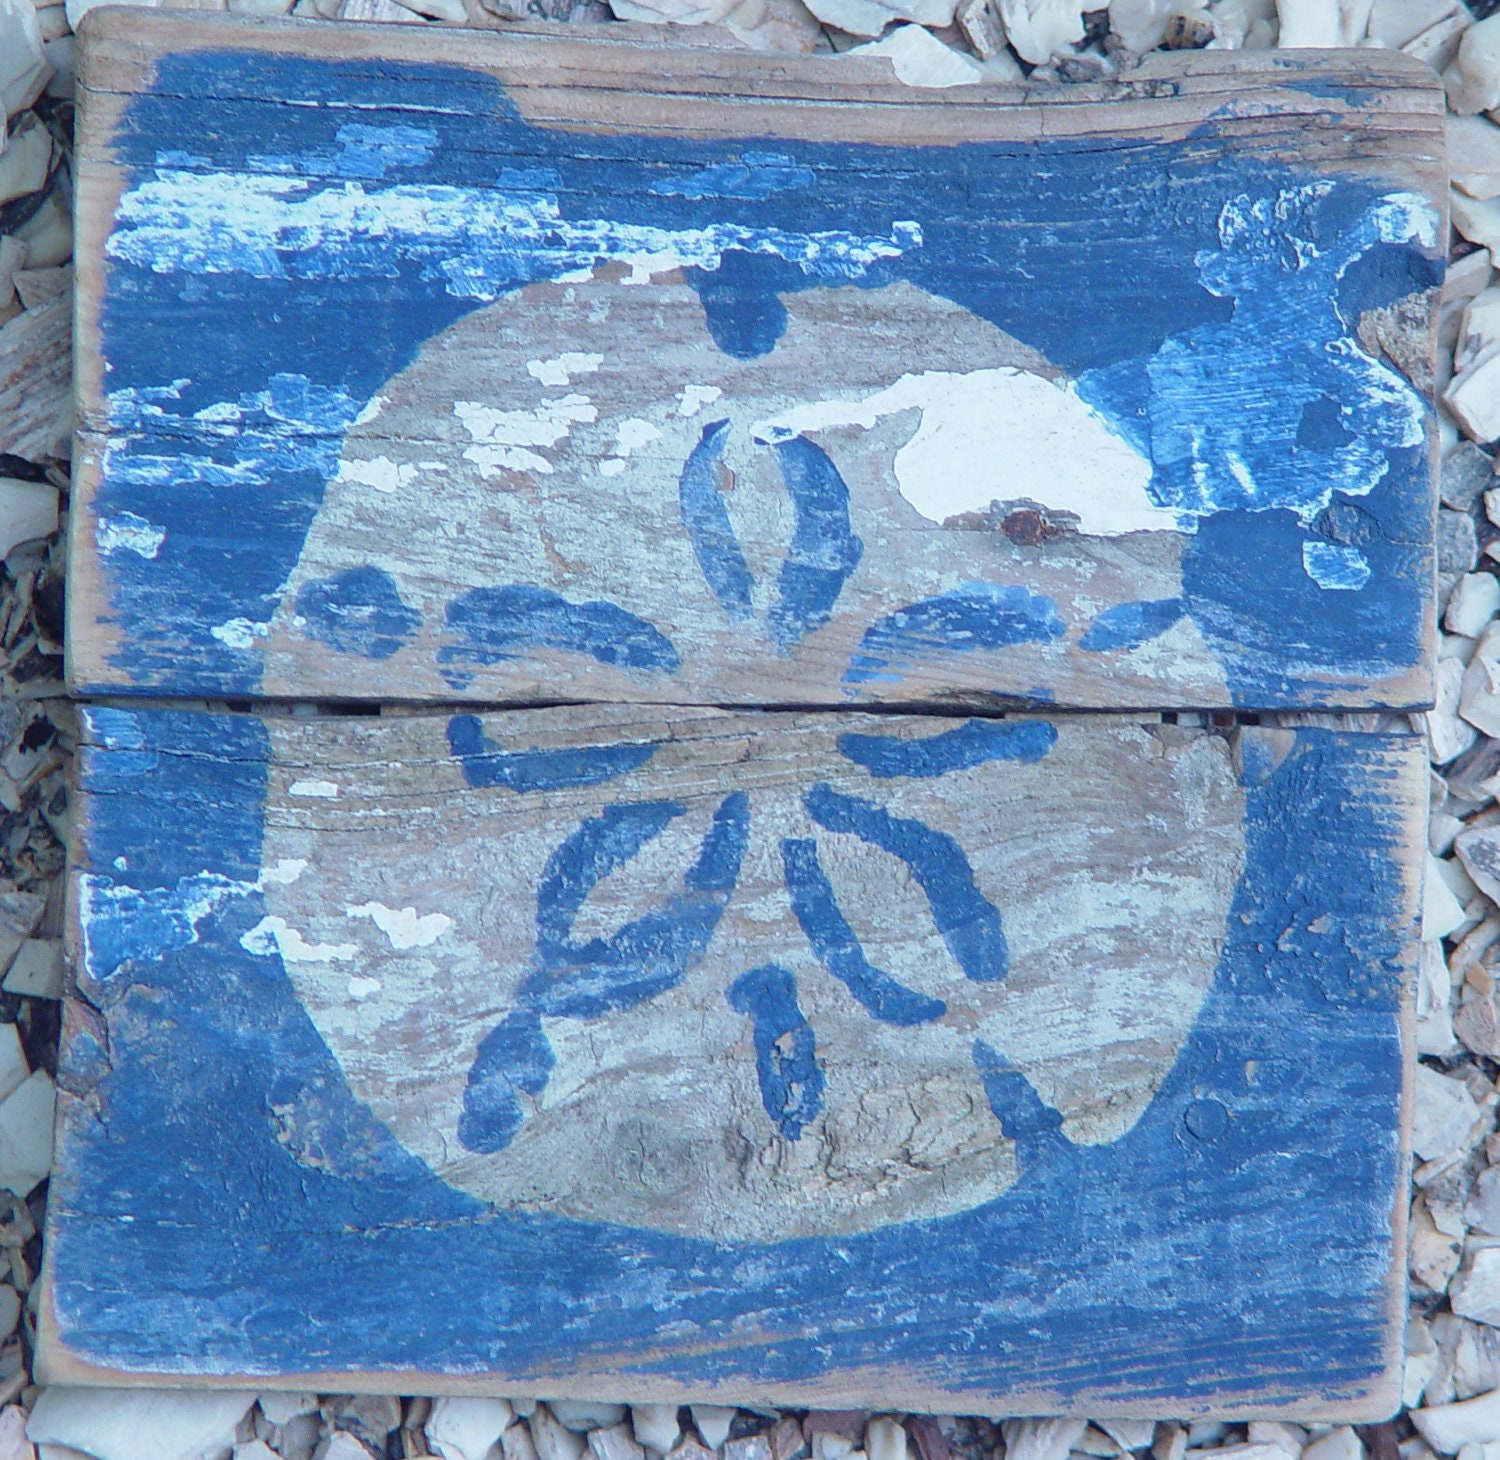 Beach Art Shabby Chic Wall Art Sandollar On Reclaimed Picket Fencing